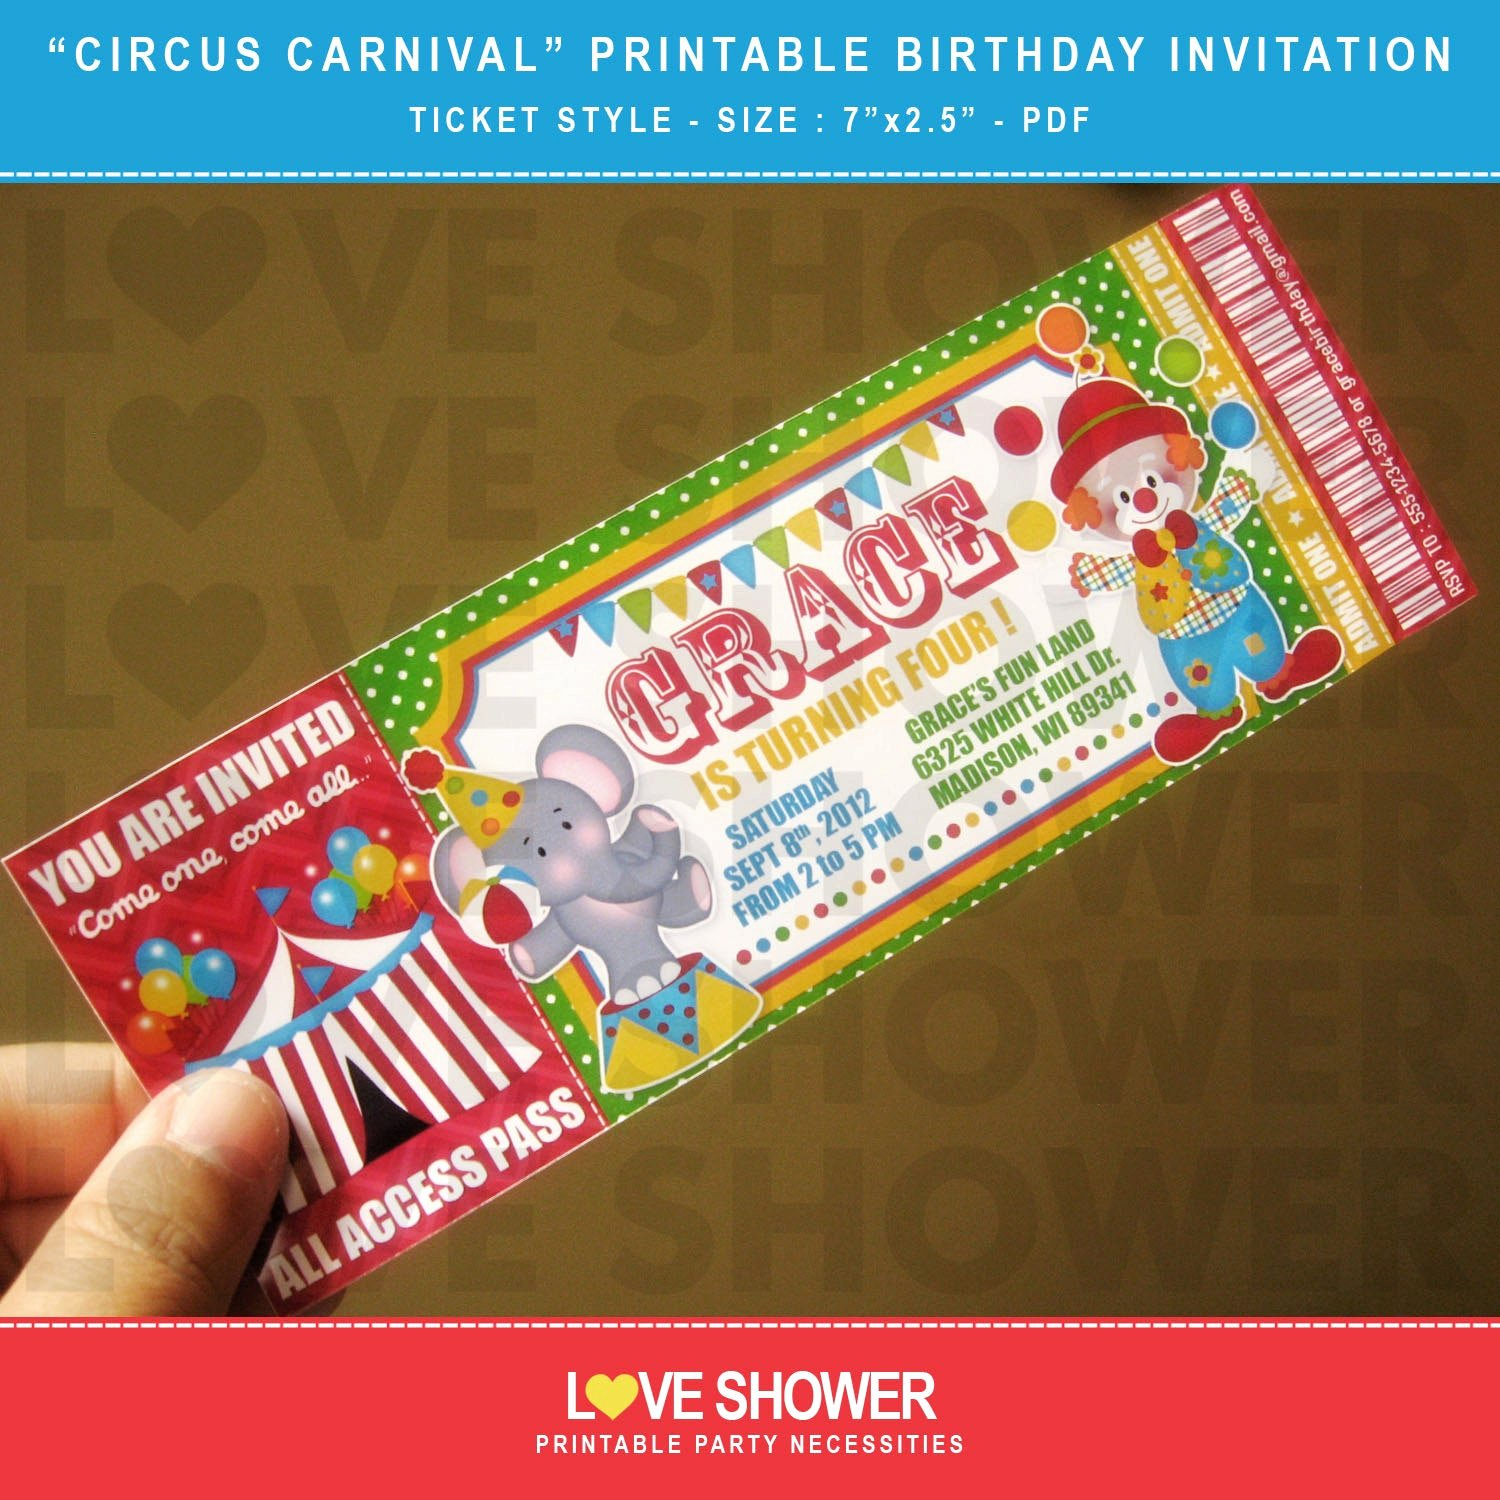 Printable Carnival Birthday Invitations Awesome Circus Carnival Printable Birthday Invitation Ticket Style